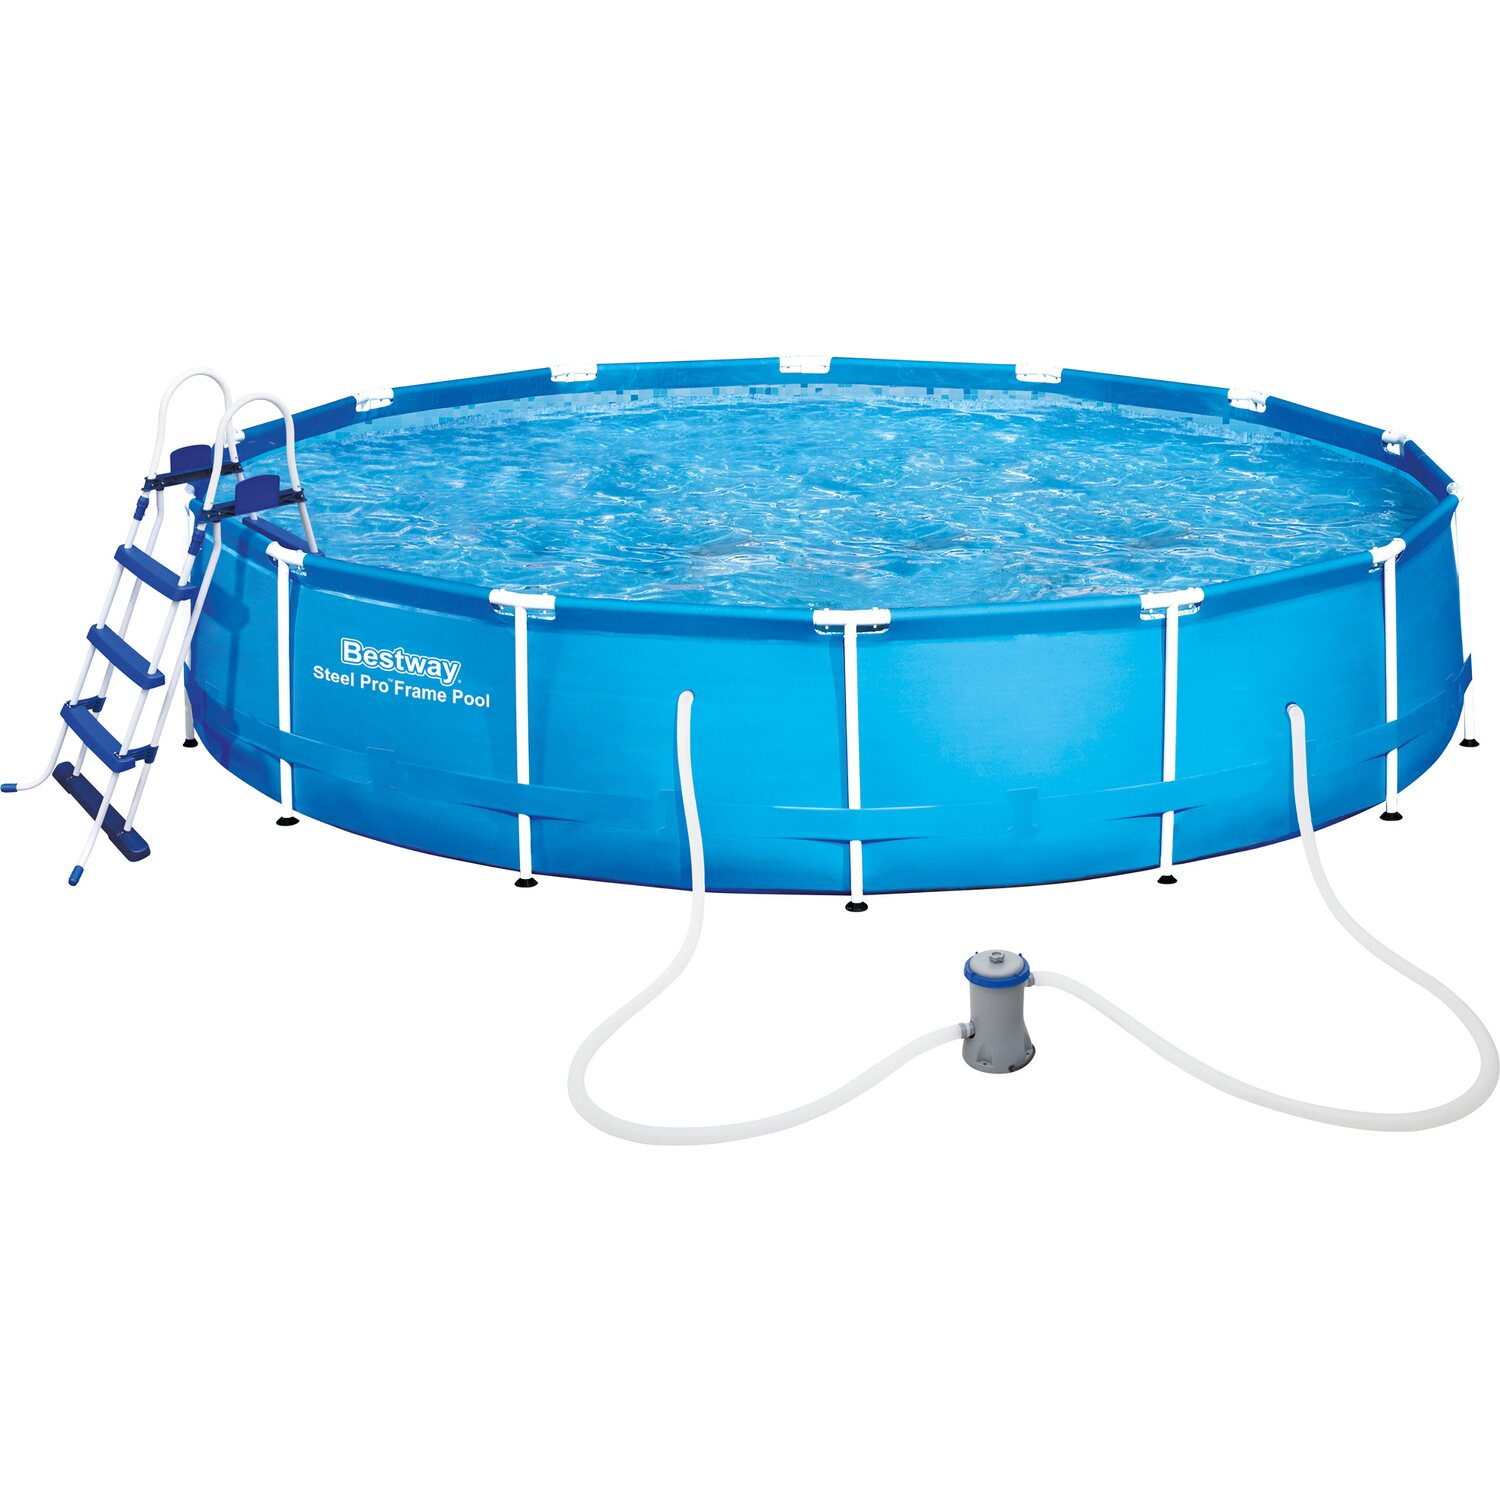 Bestway stahlrahmen swimming pool set 457 cm x 91 cm for Pool obi baumarkt